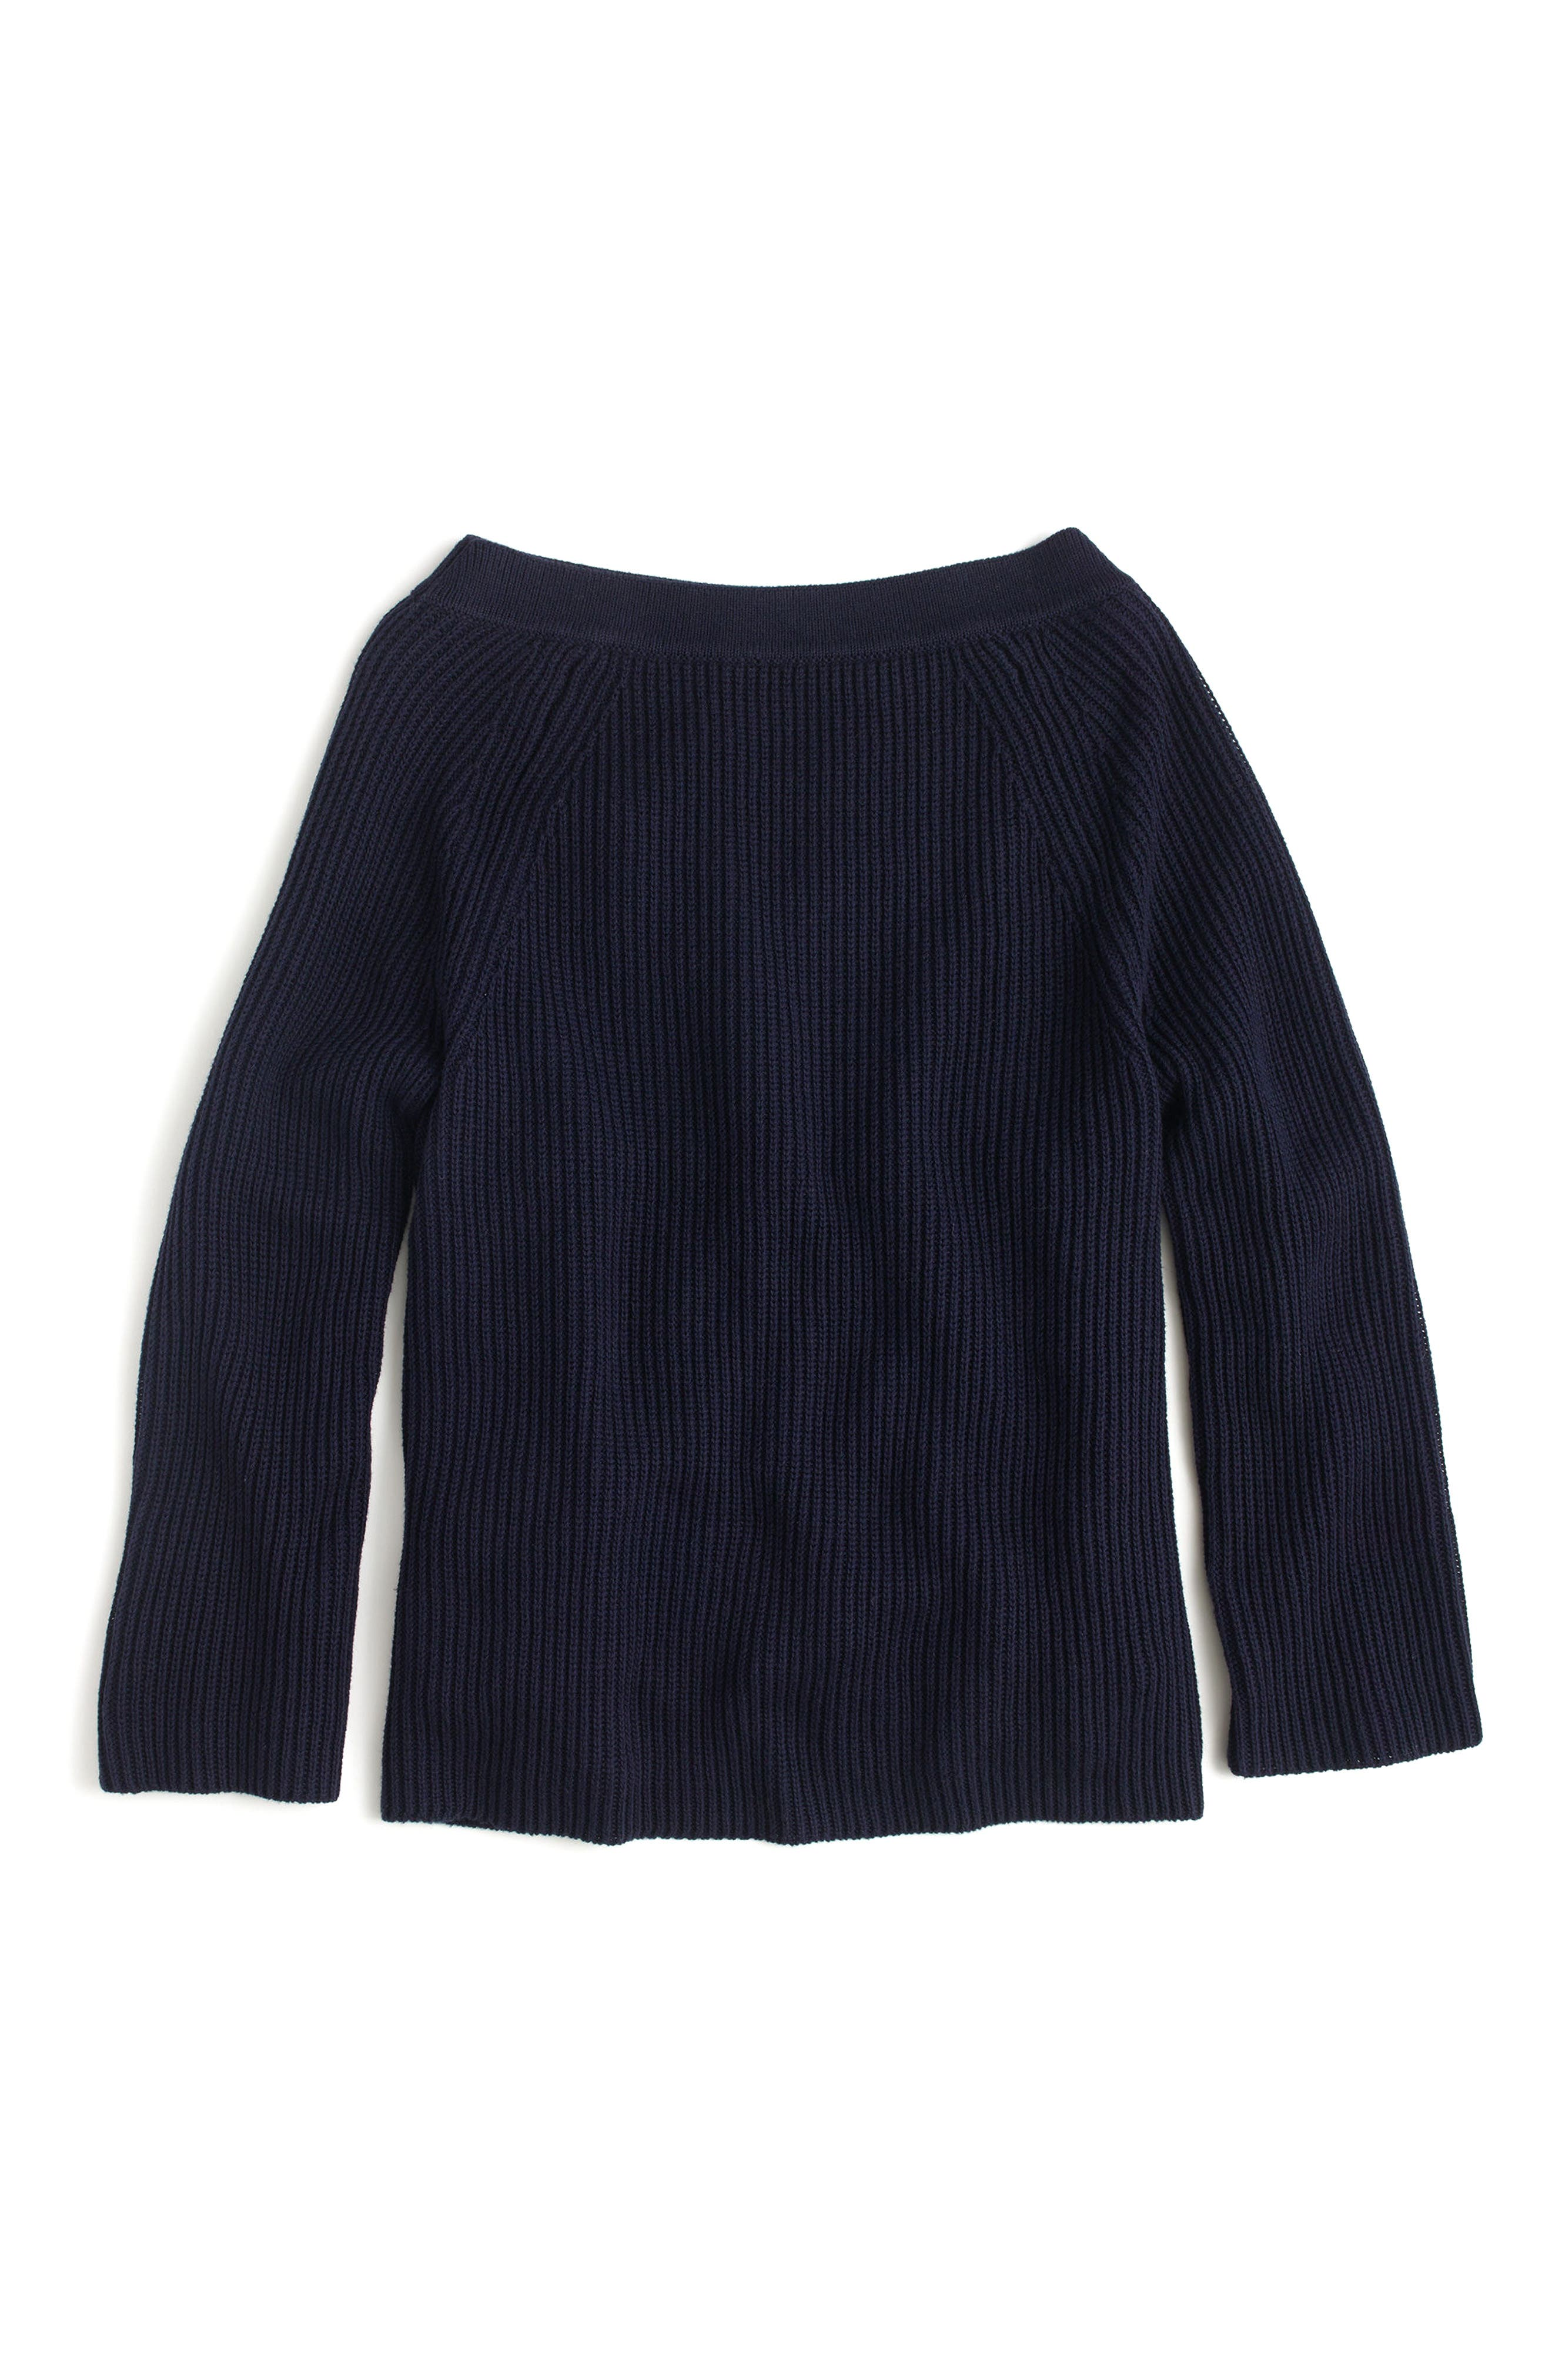 J.Crew Relaxed Cotton Boatneck Sweater